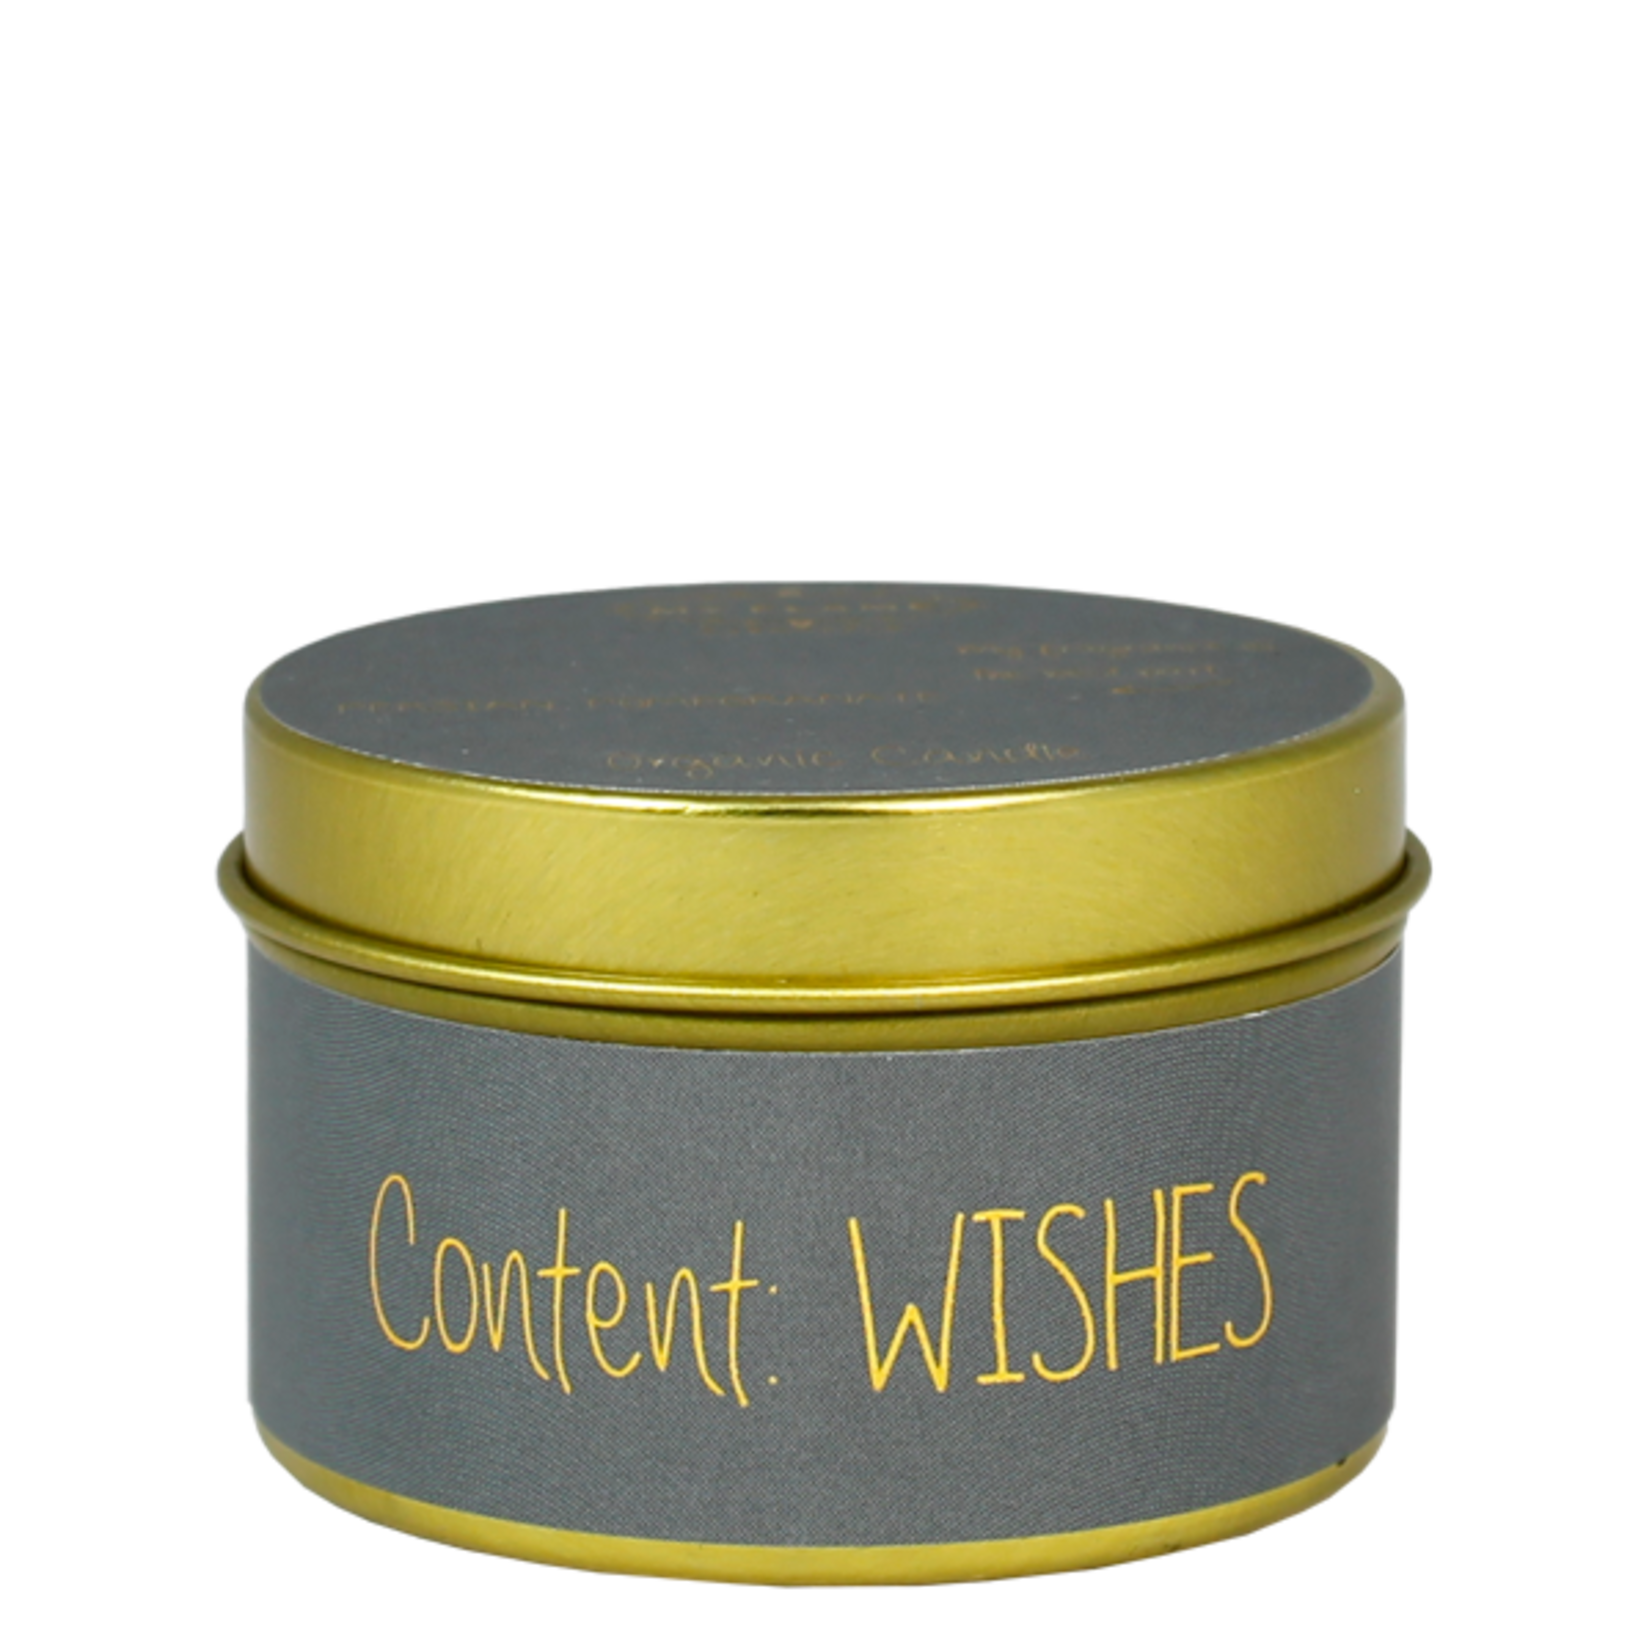 My Flame Sojakaars in blik - Content: wishes